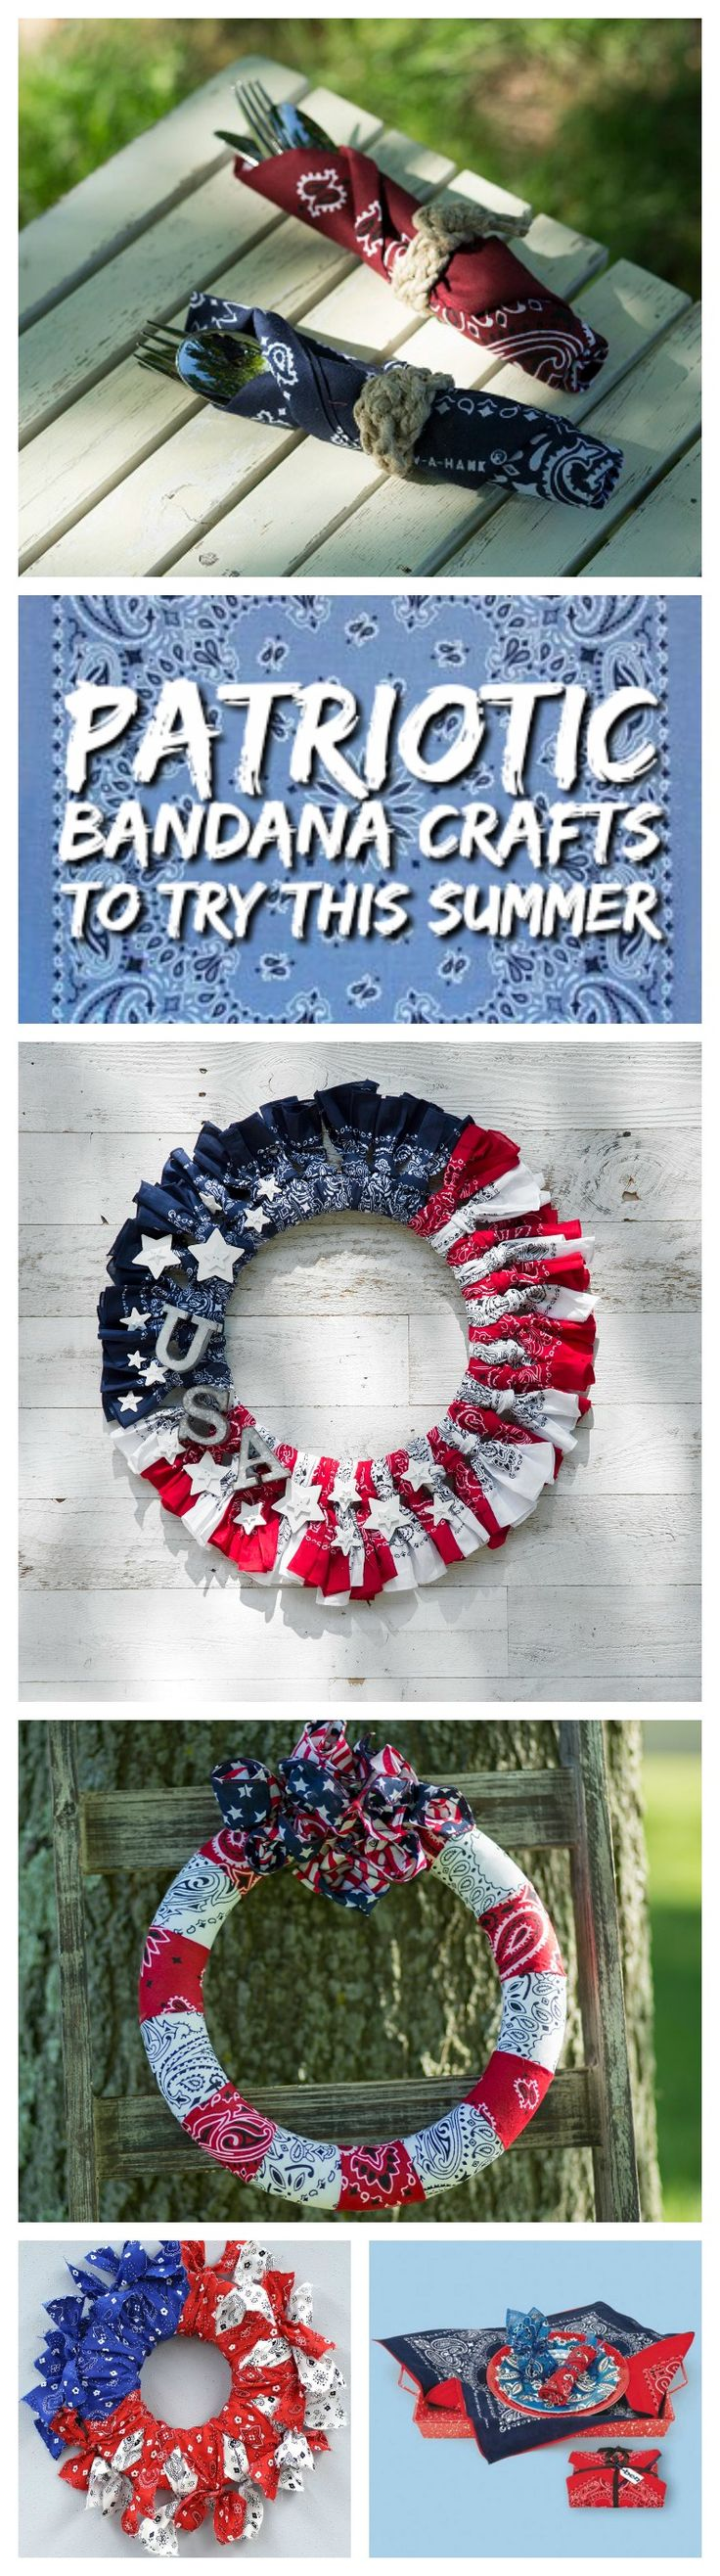 Create patriotic bandana crafts with these fun projects! Summer Crafts | Bandana Crafts | Bandana Wreath